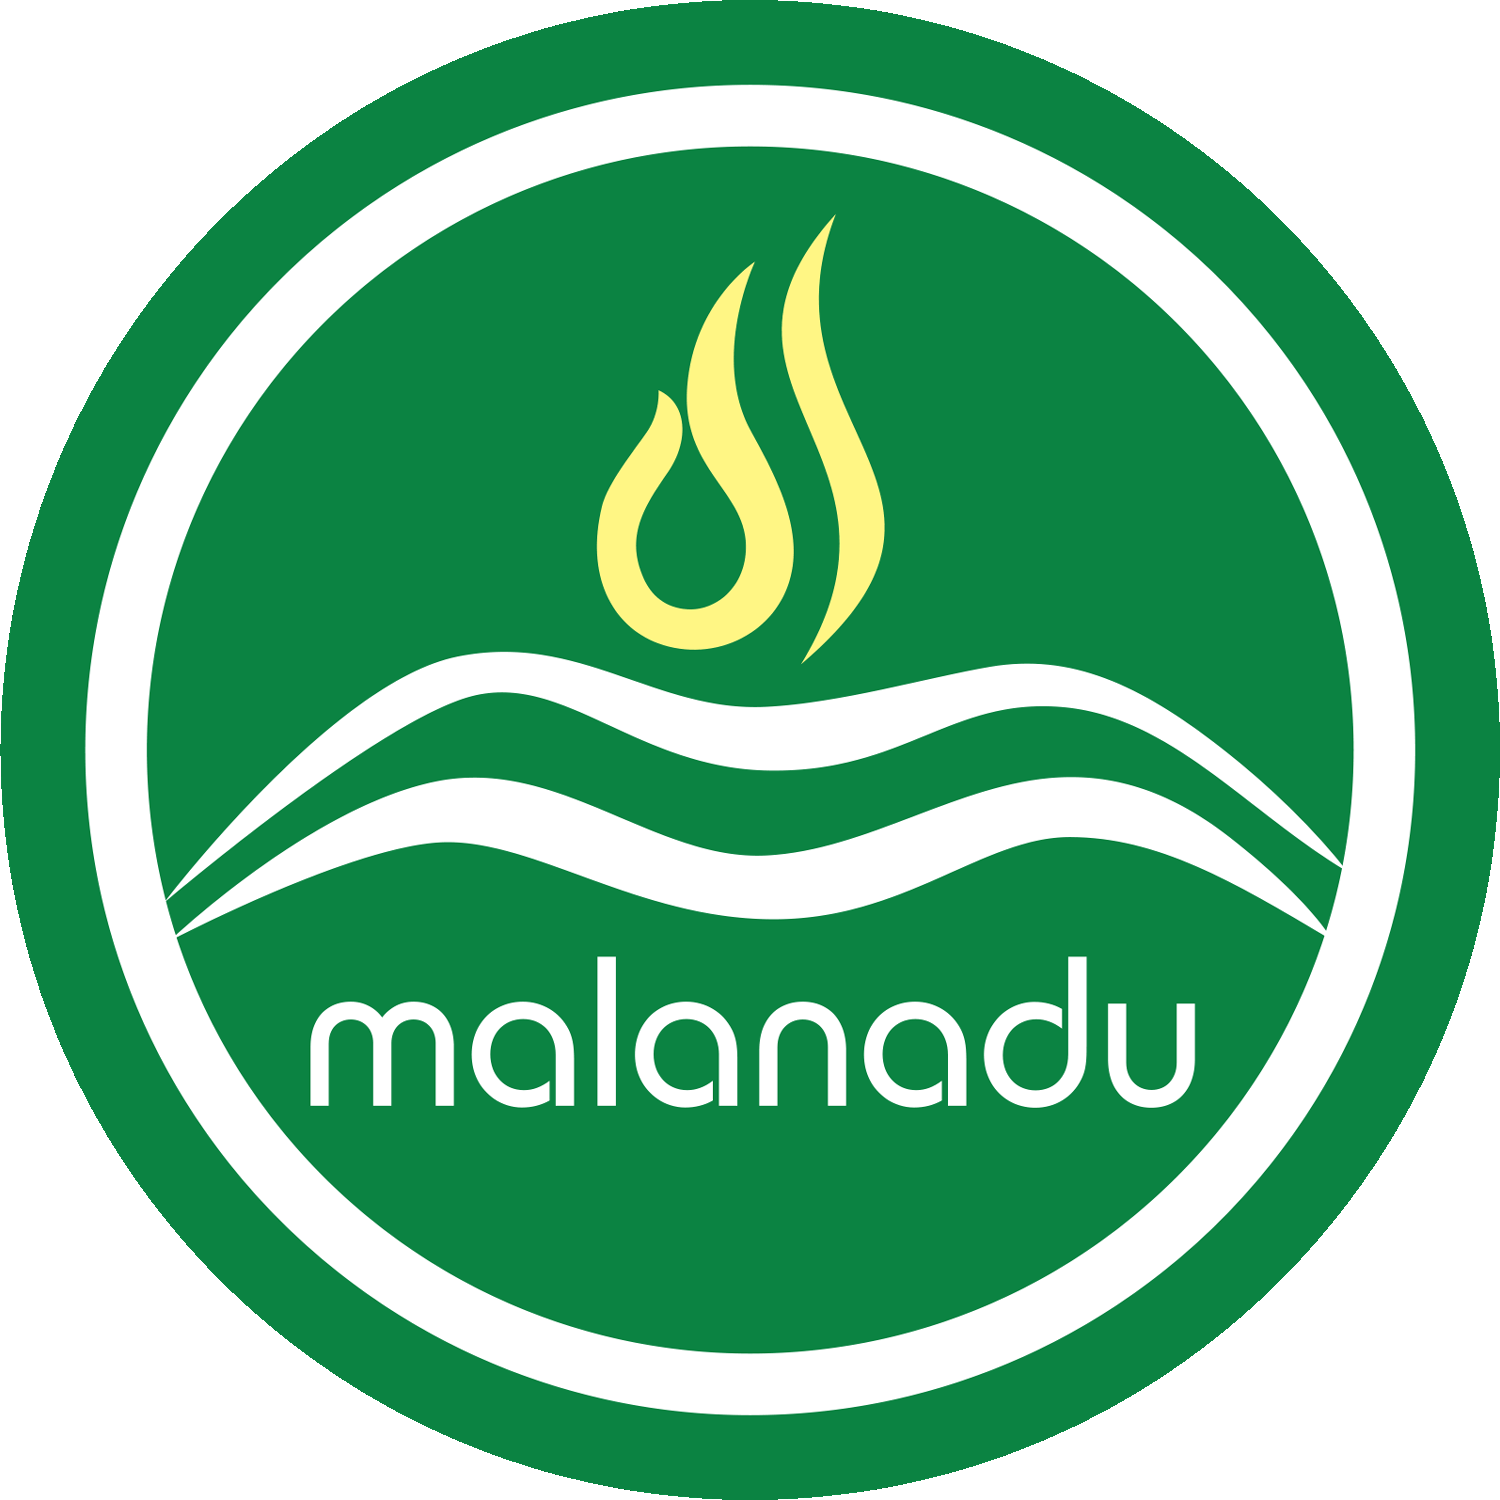 Malanadu Development Society-Food and Beverage Company